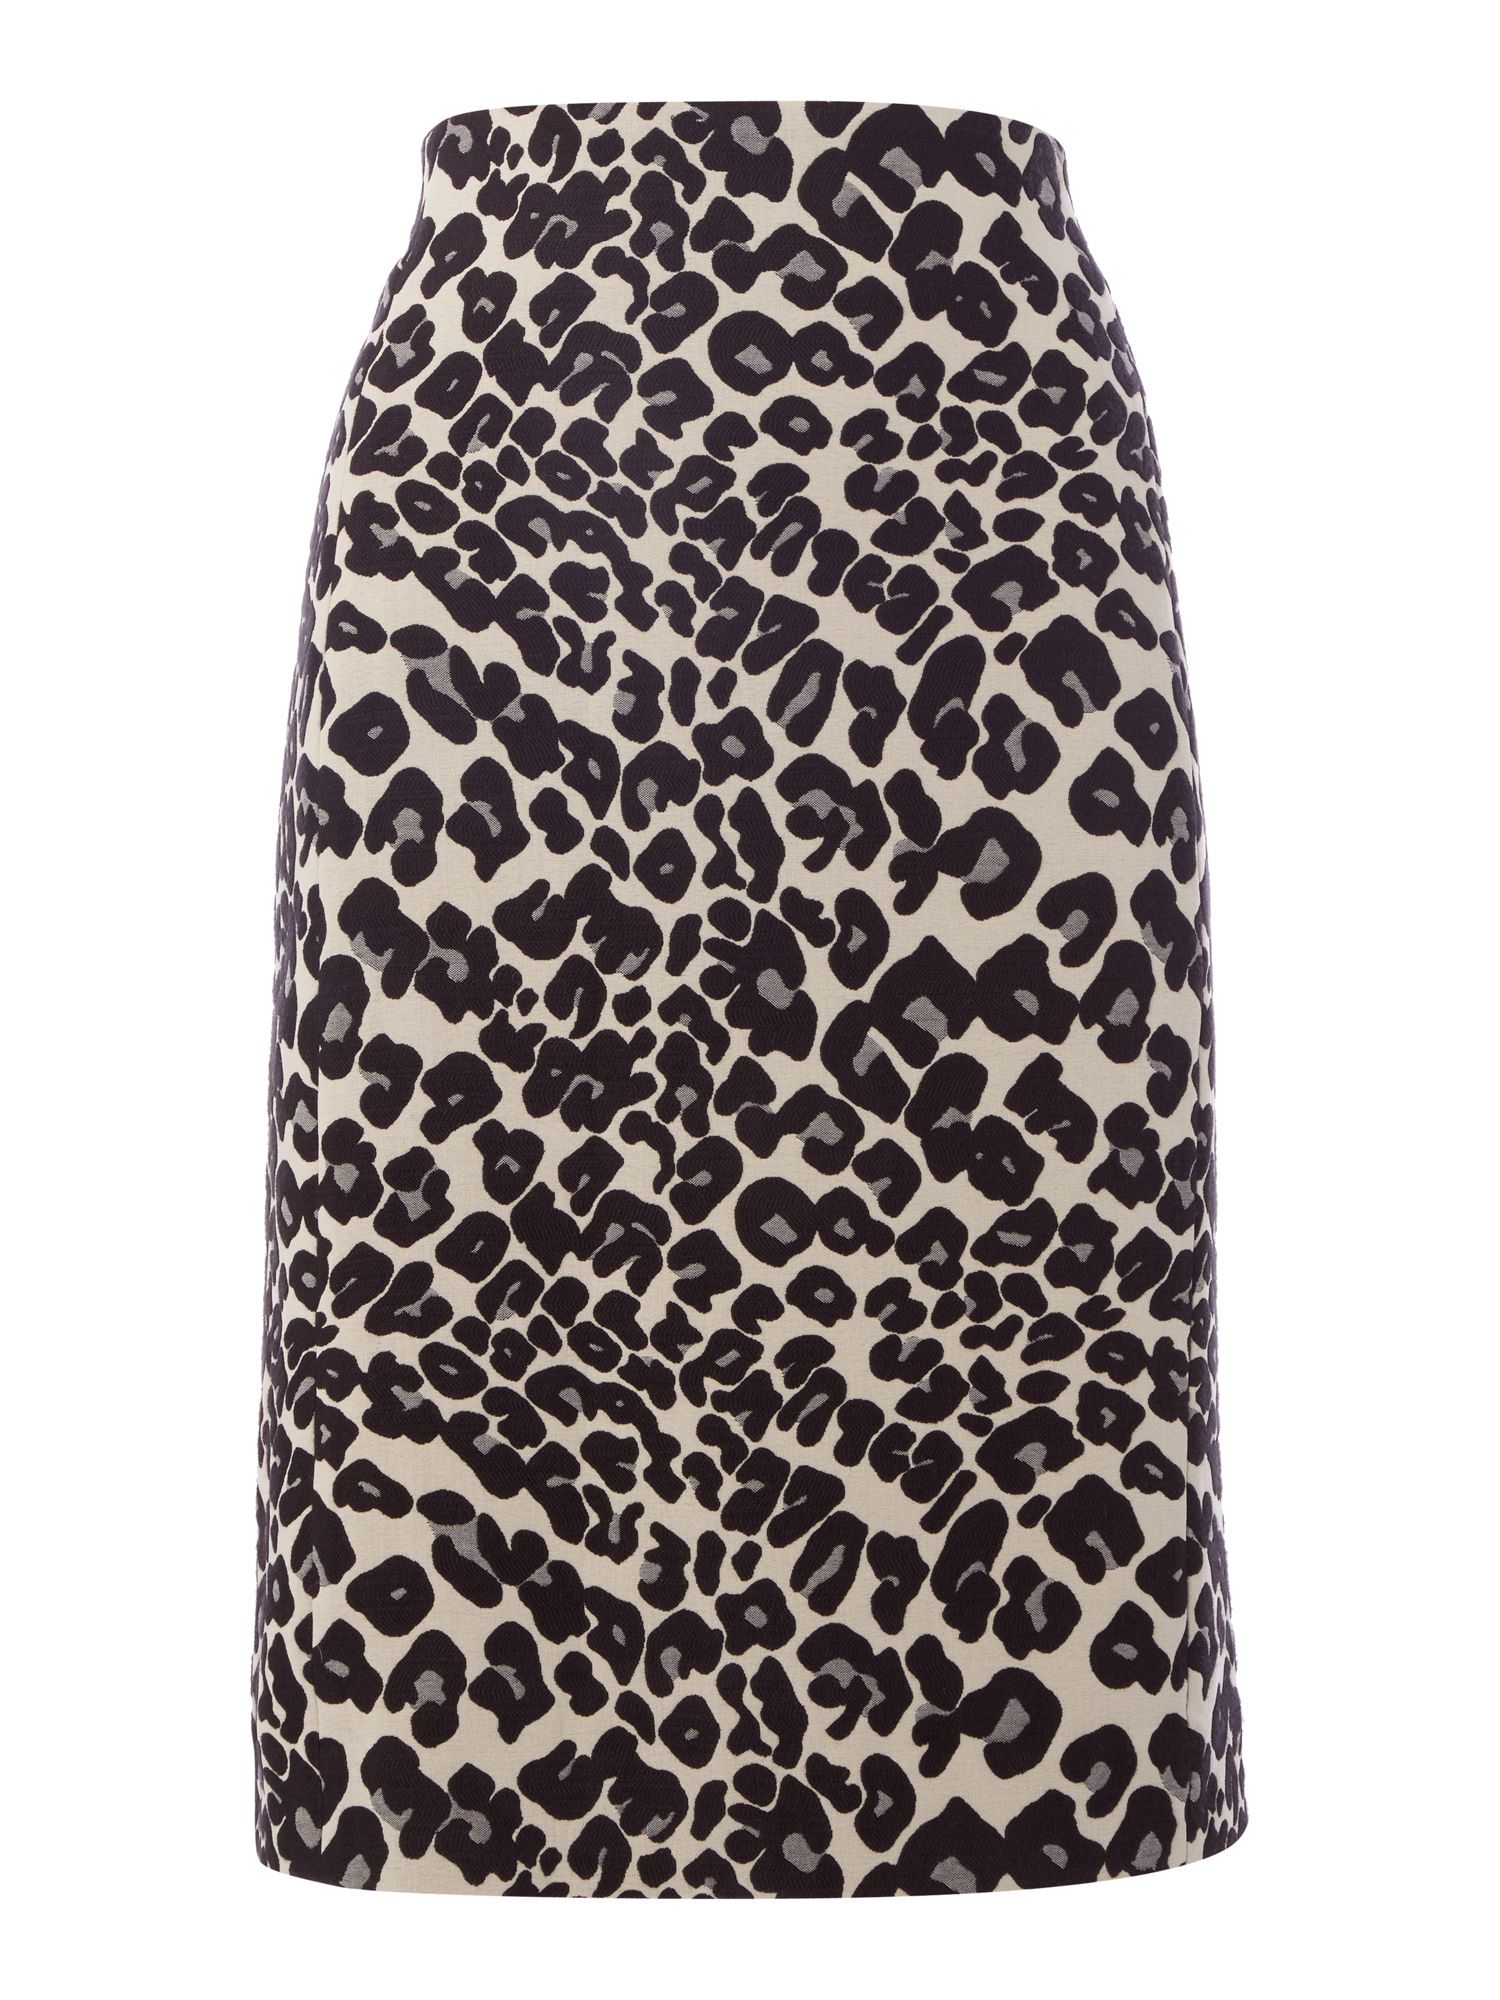 In Wear Animal print skirt, Leopard